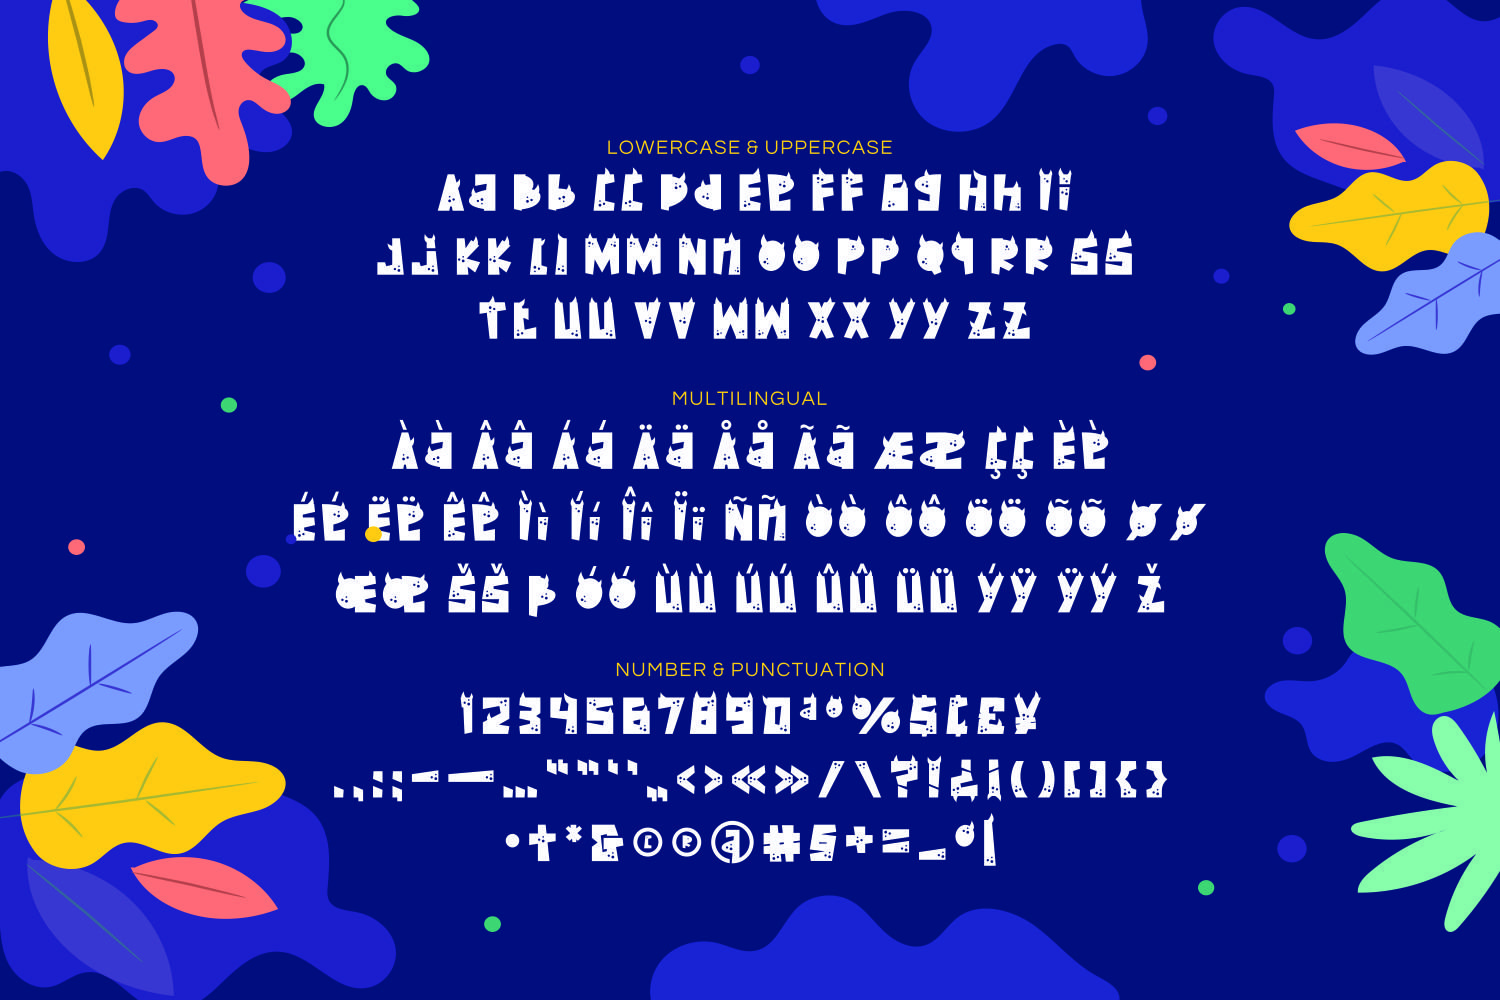 Dinohorn - Playful Display Font example image 5